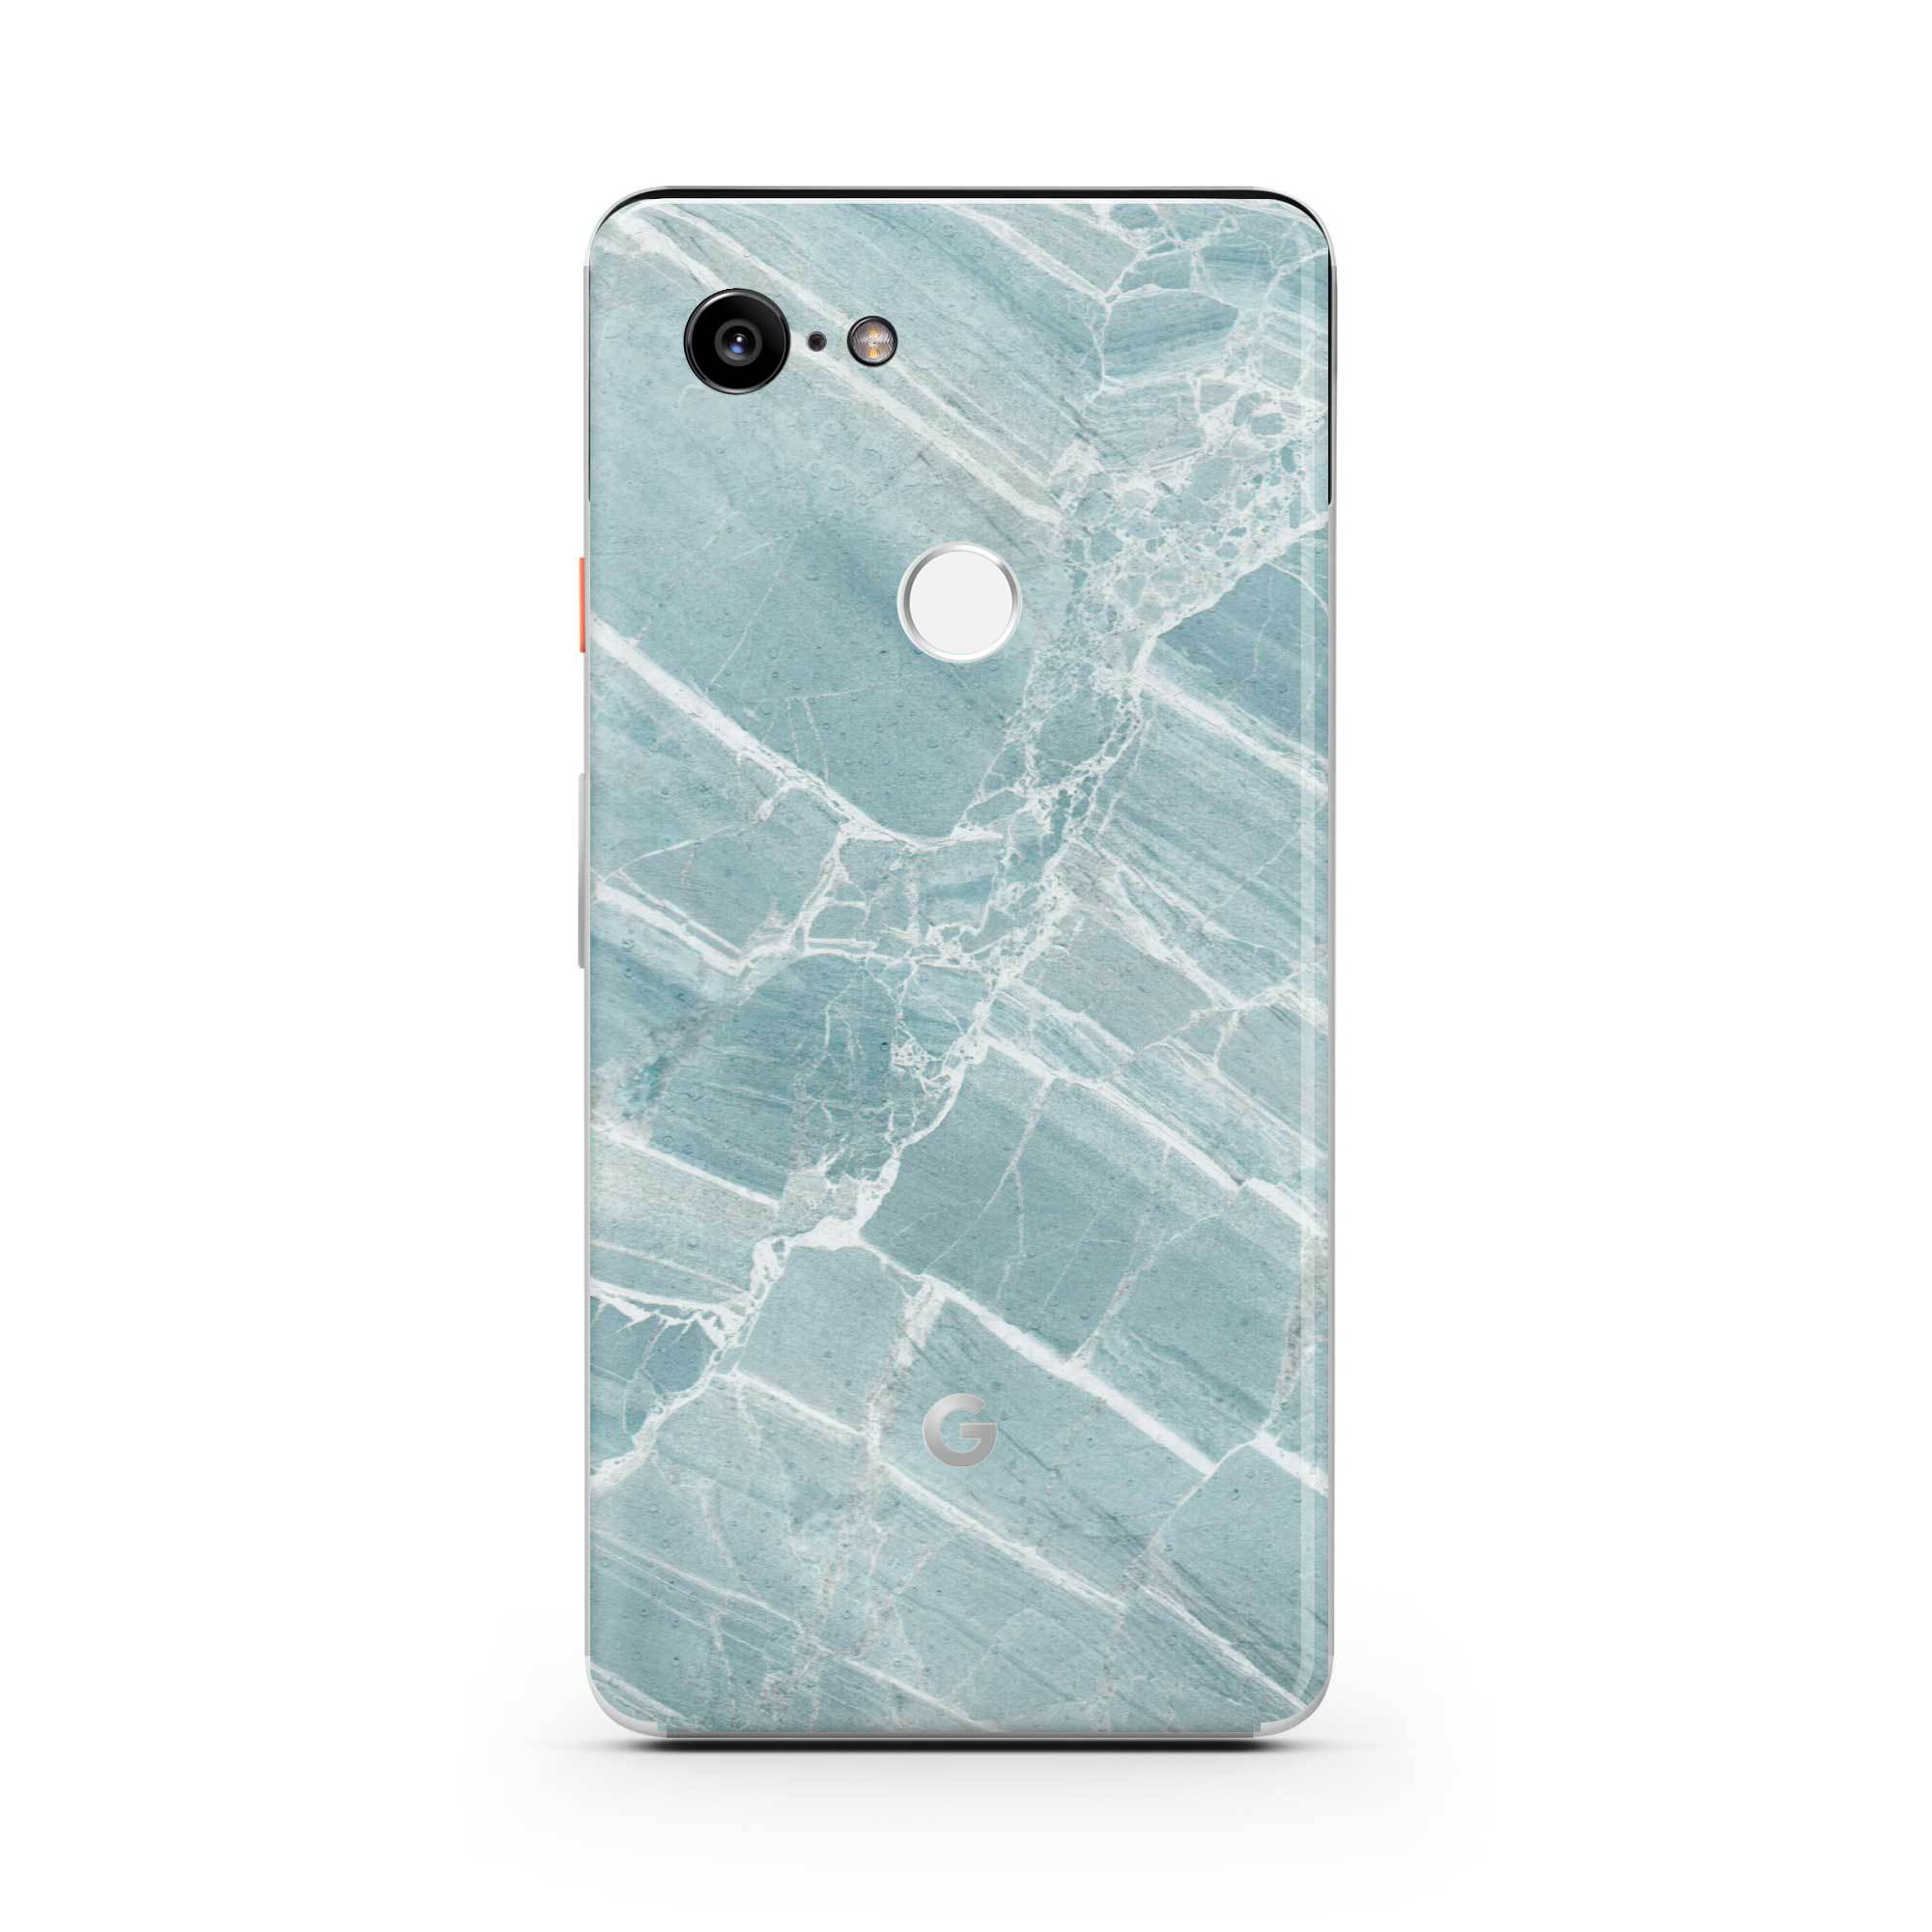 Mint Marble Pixel 3 XL Skin + Case